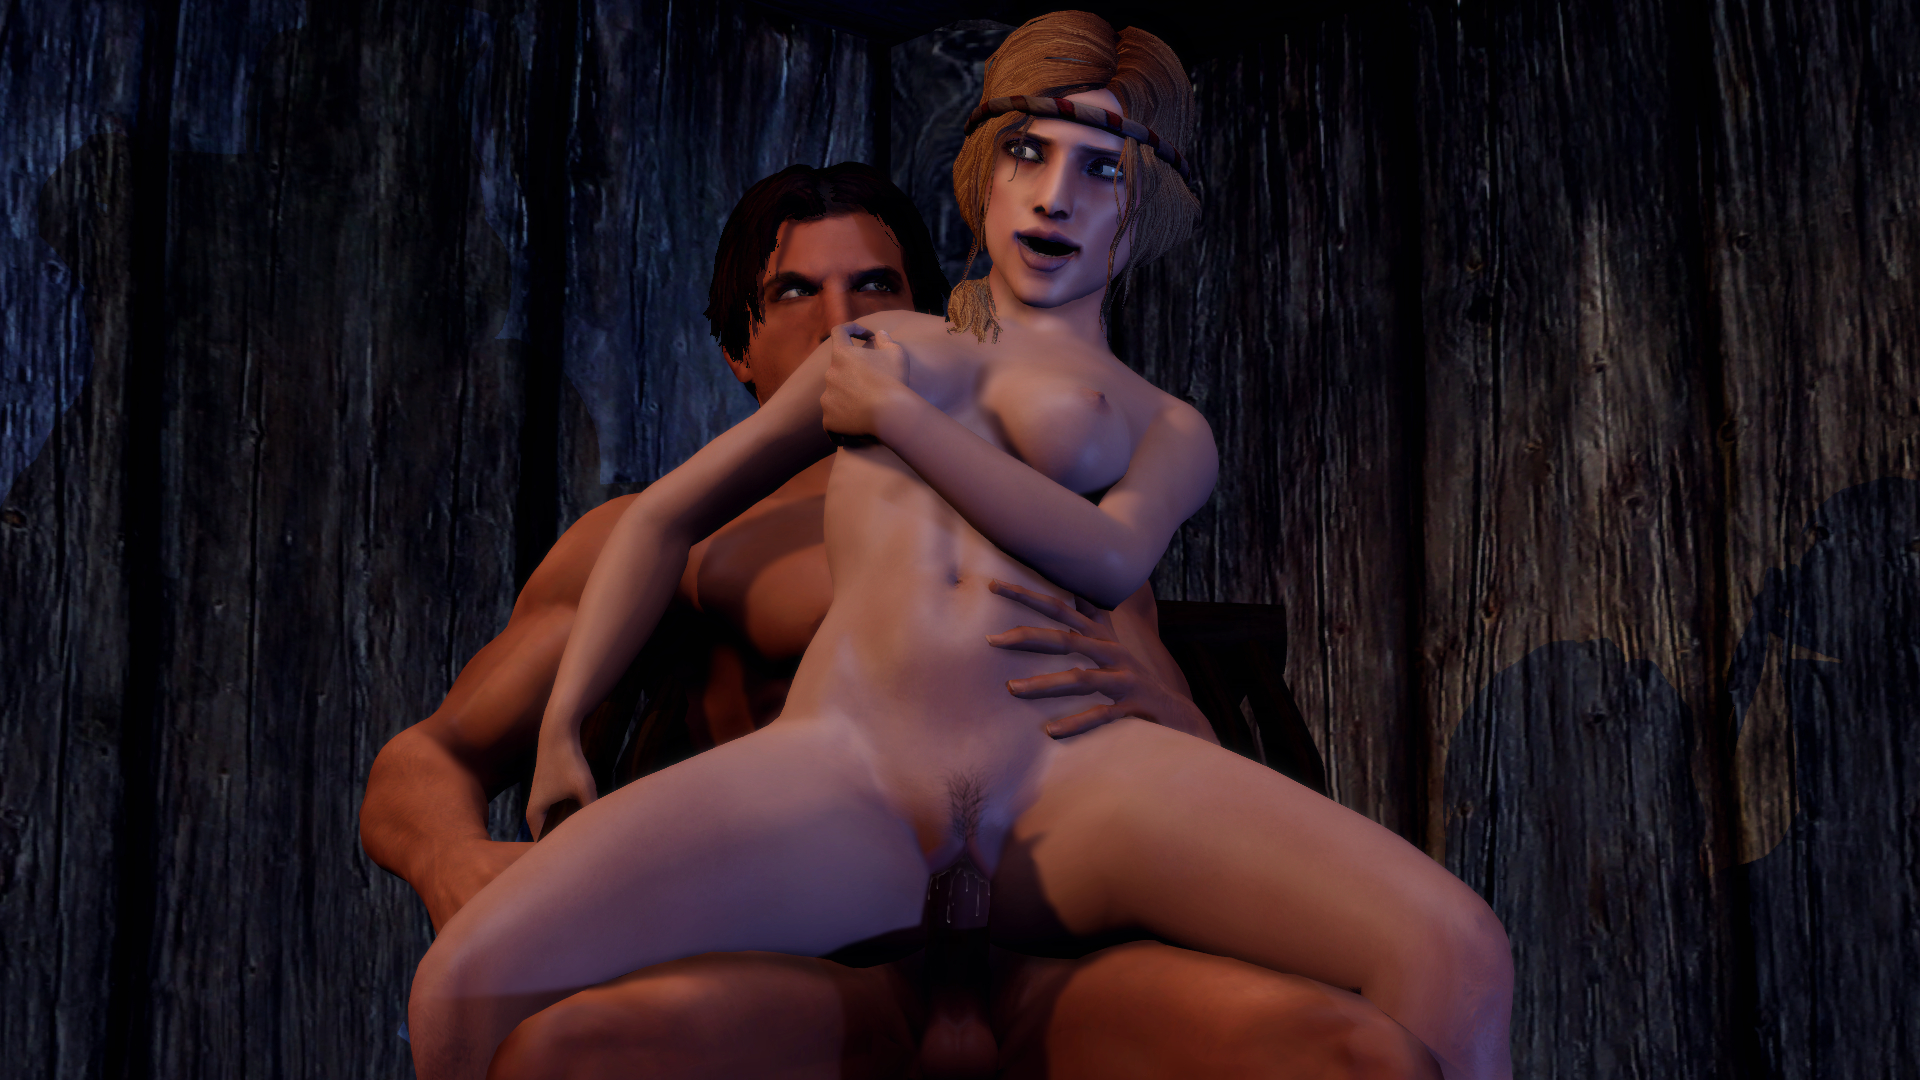 Assassin creed porno pics nsfw movie